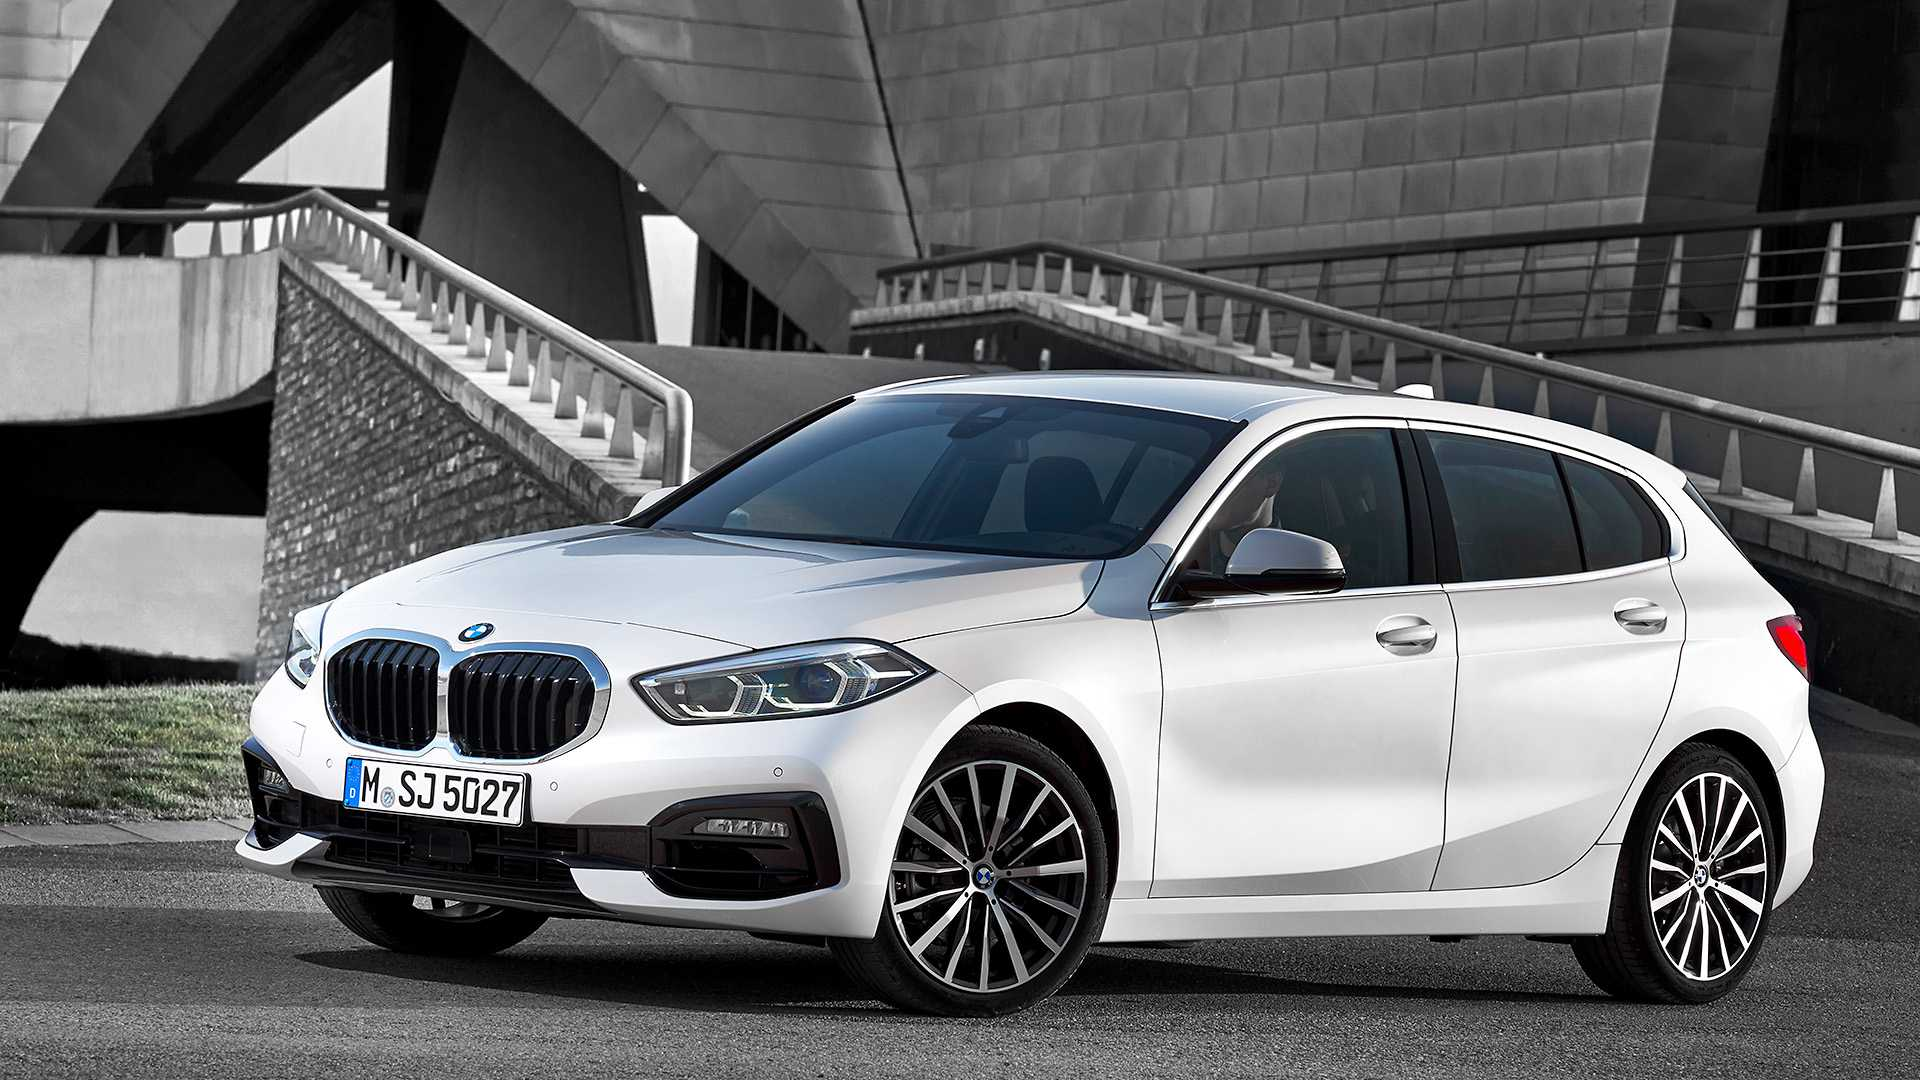 84 The Best 2020 Bmw 1 Series Usa Pictures